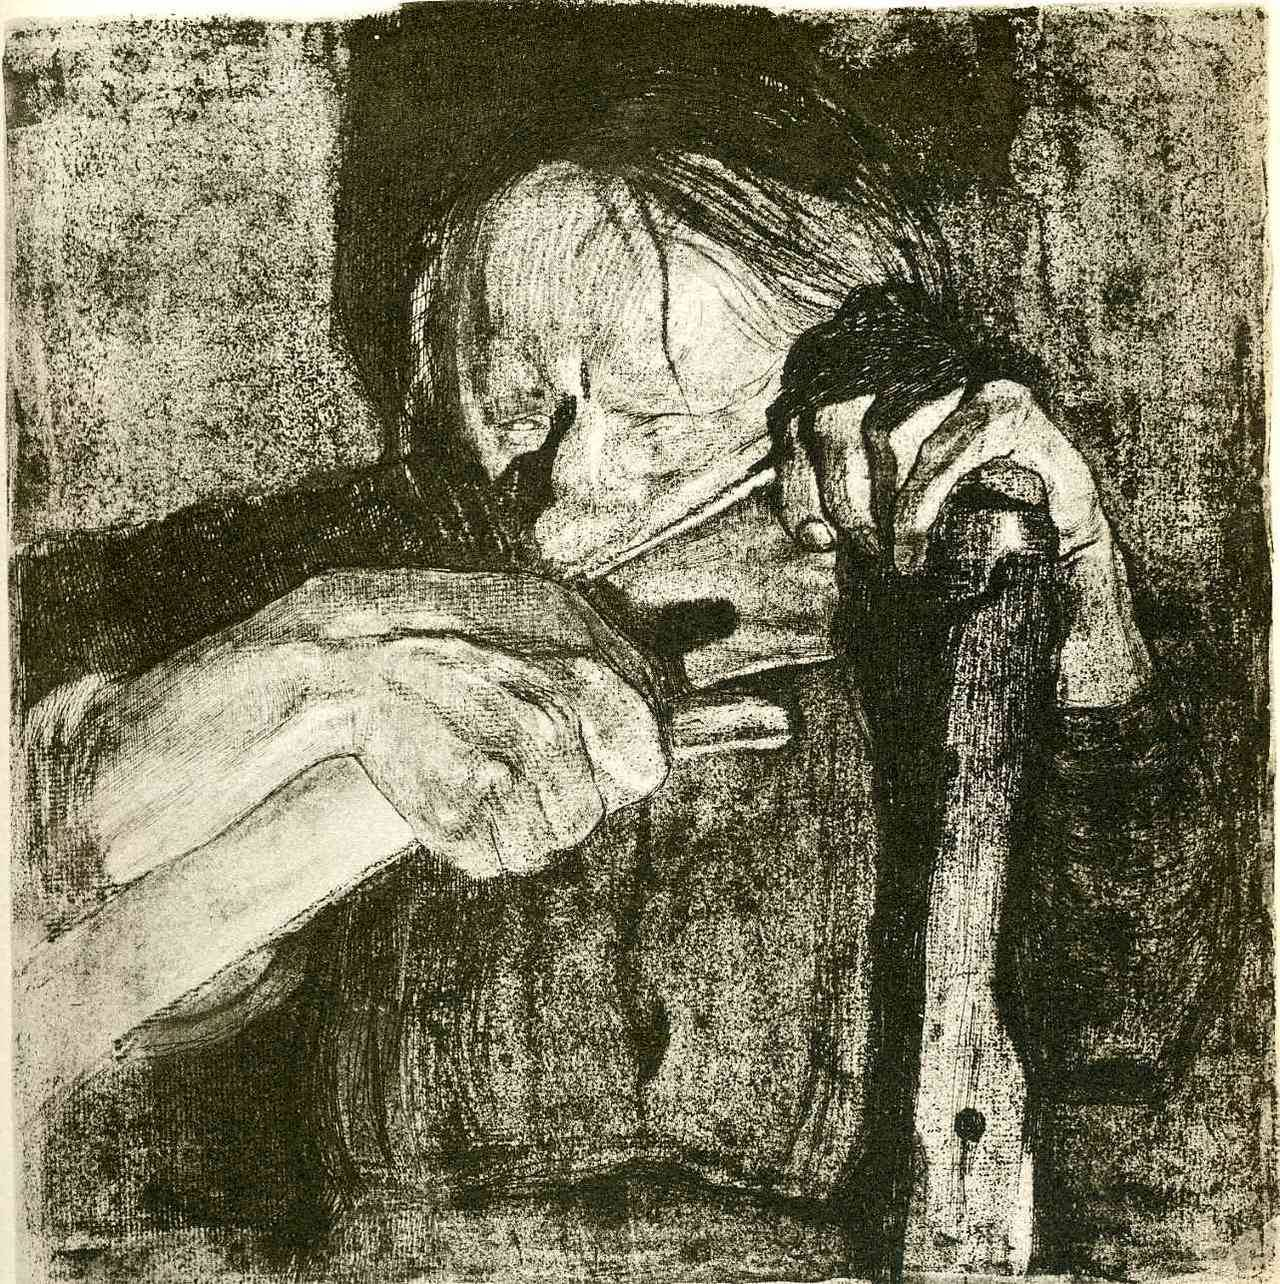 Kathe Kollwitz: Whetting the Scythe (1921) drypoint and aquatint, Whitworth Art Gallery, The University of Manchester, UK